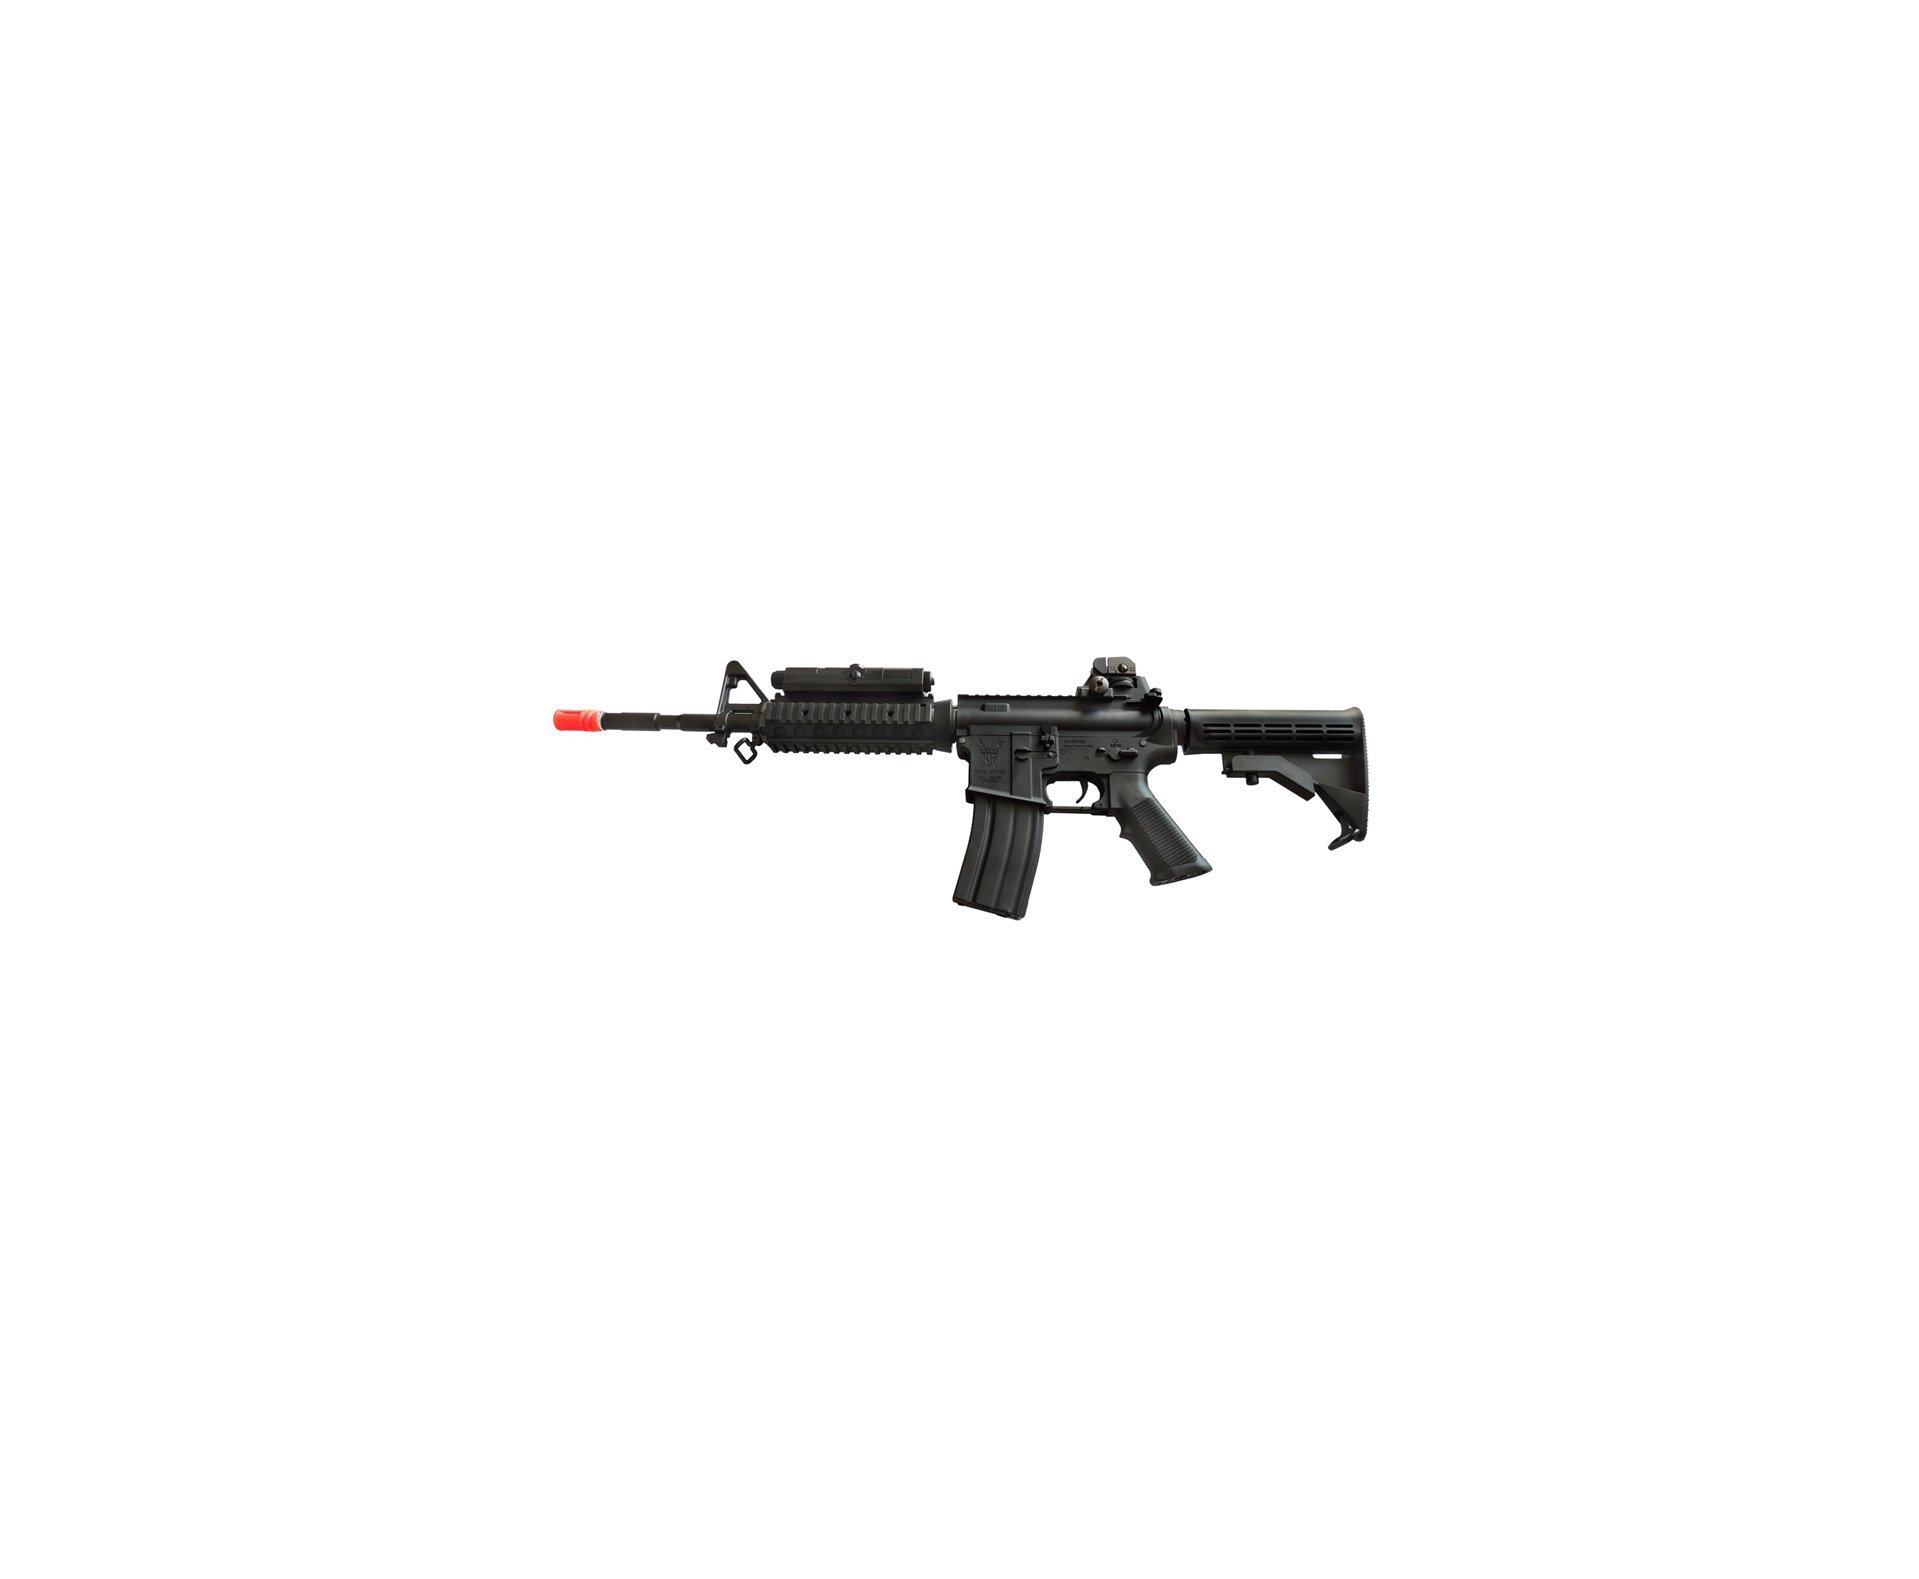 Rifle De Airsoft M4 Ris Ultra Grade Cal 6.0mm - King Arms + Pistola Glock Cyma